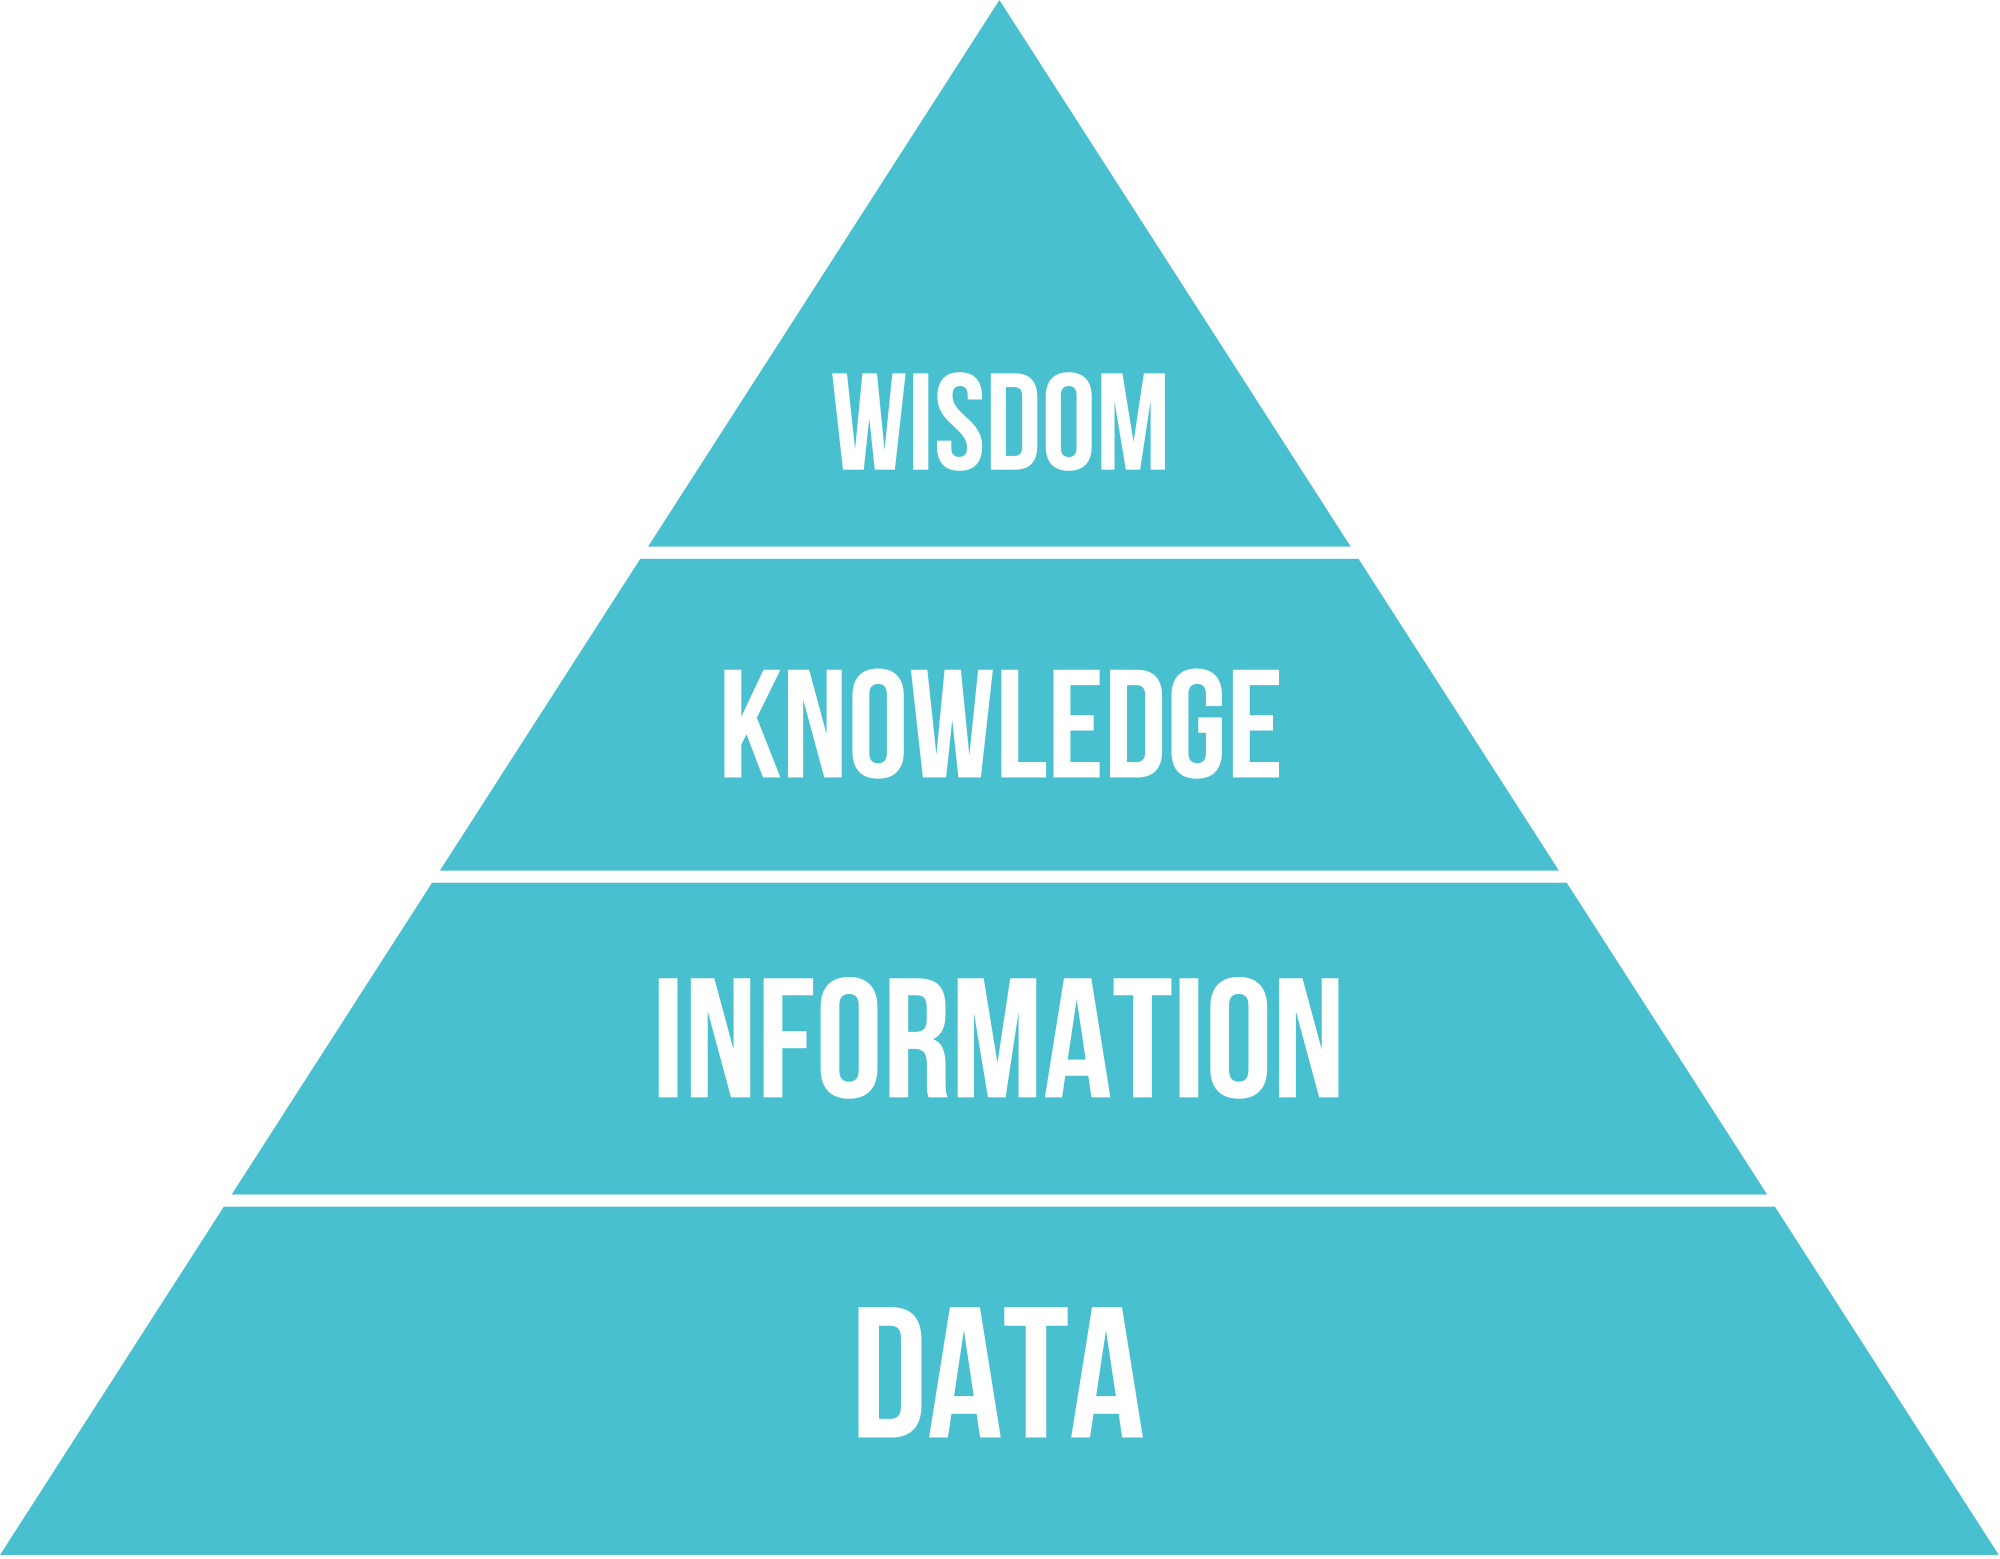 Illustrated DIKW pyramid with Data as base, followed by Information, then Knowledge. Wisdom is on top.